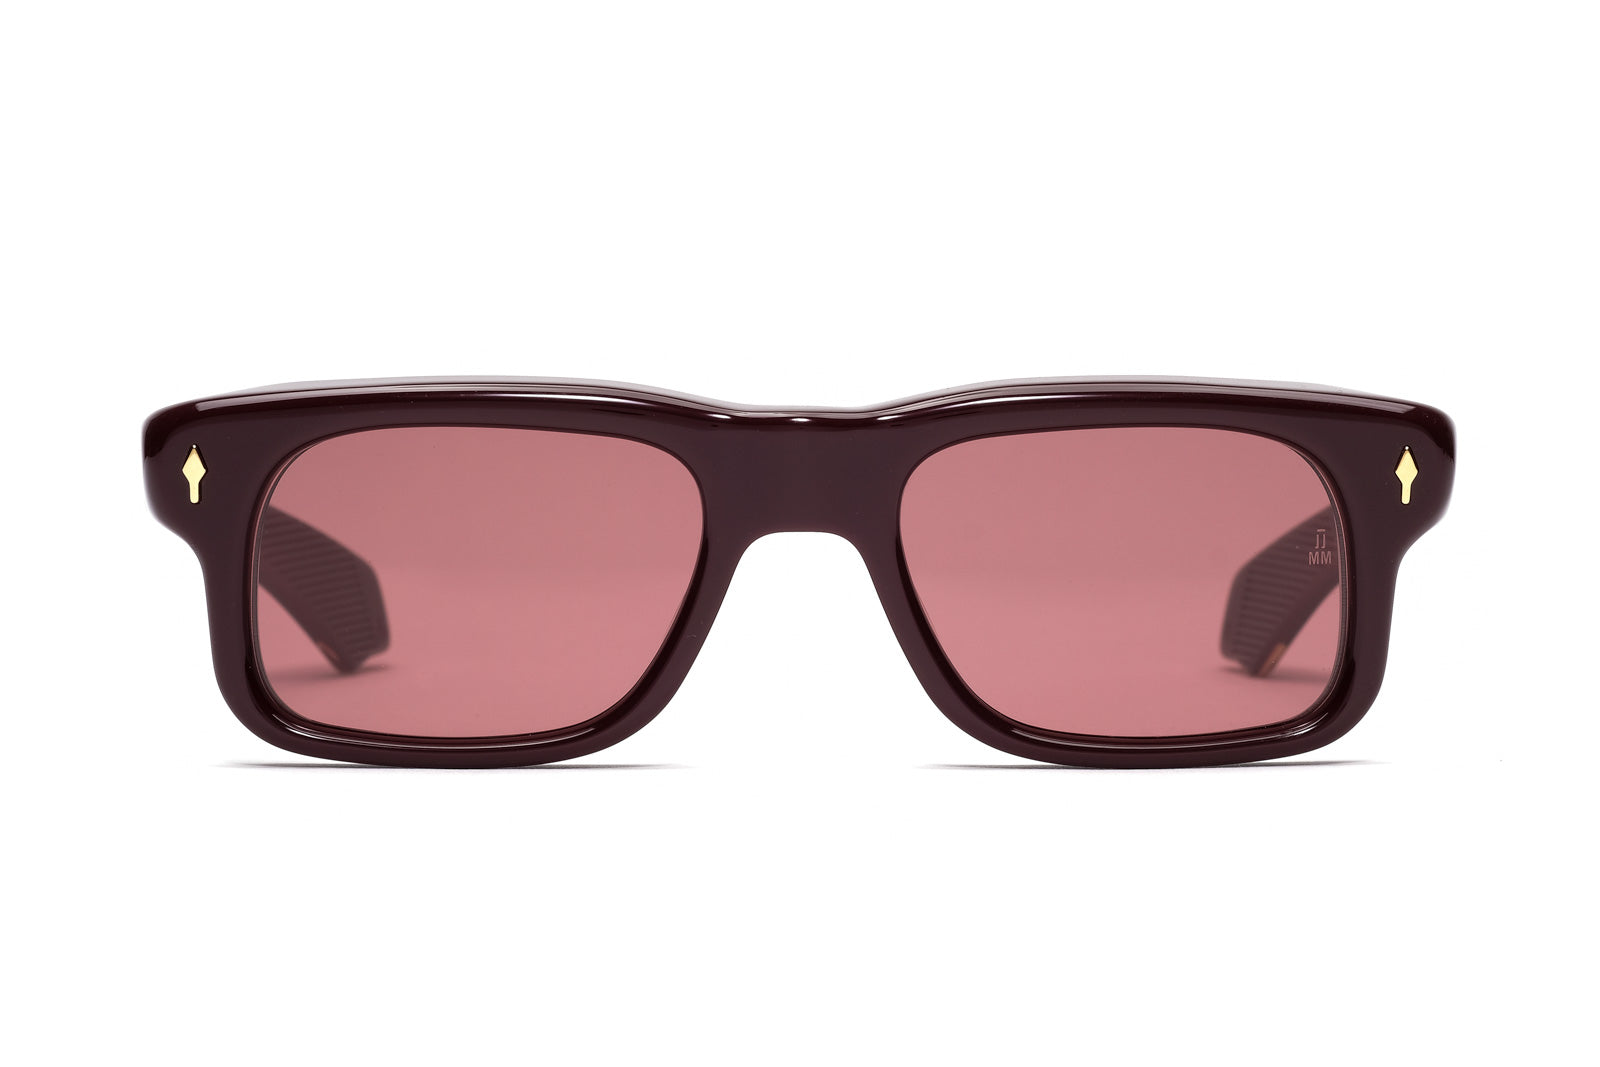 Jacques Marie Mage Saint Reserve Sunglasses